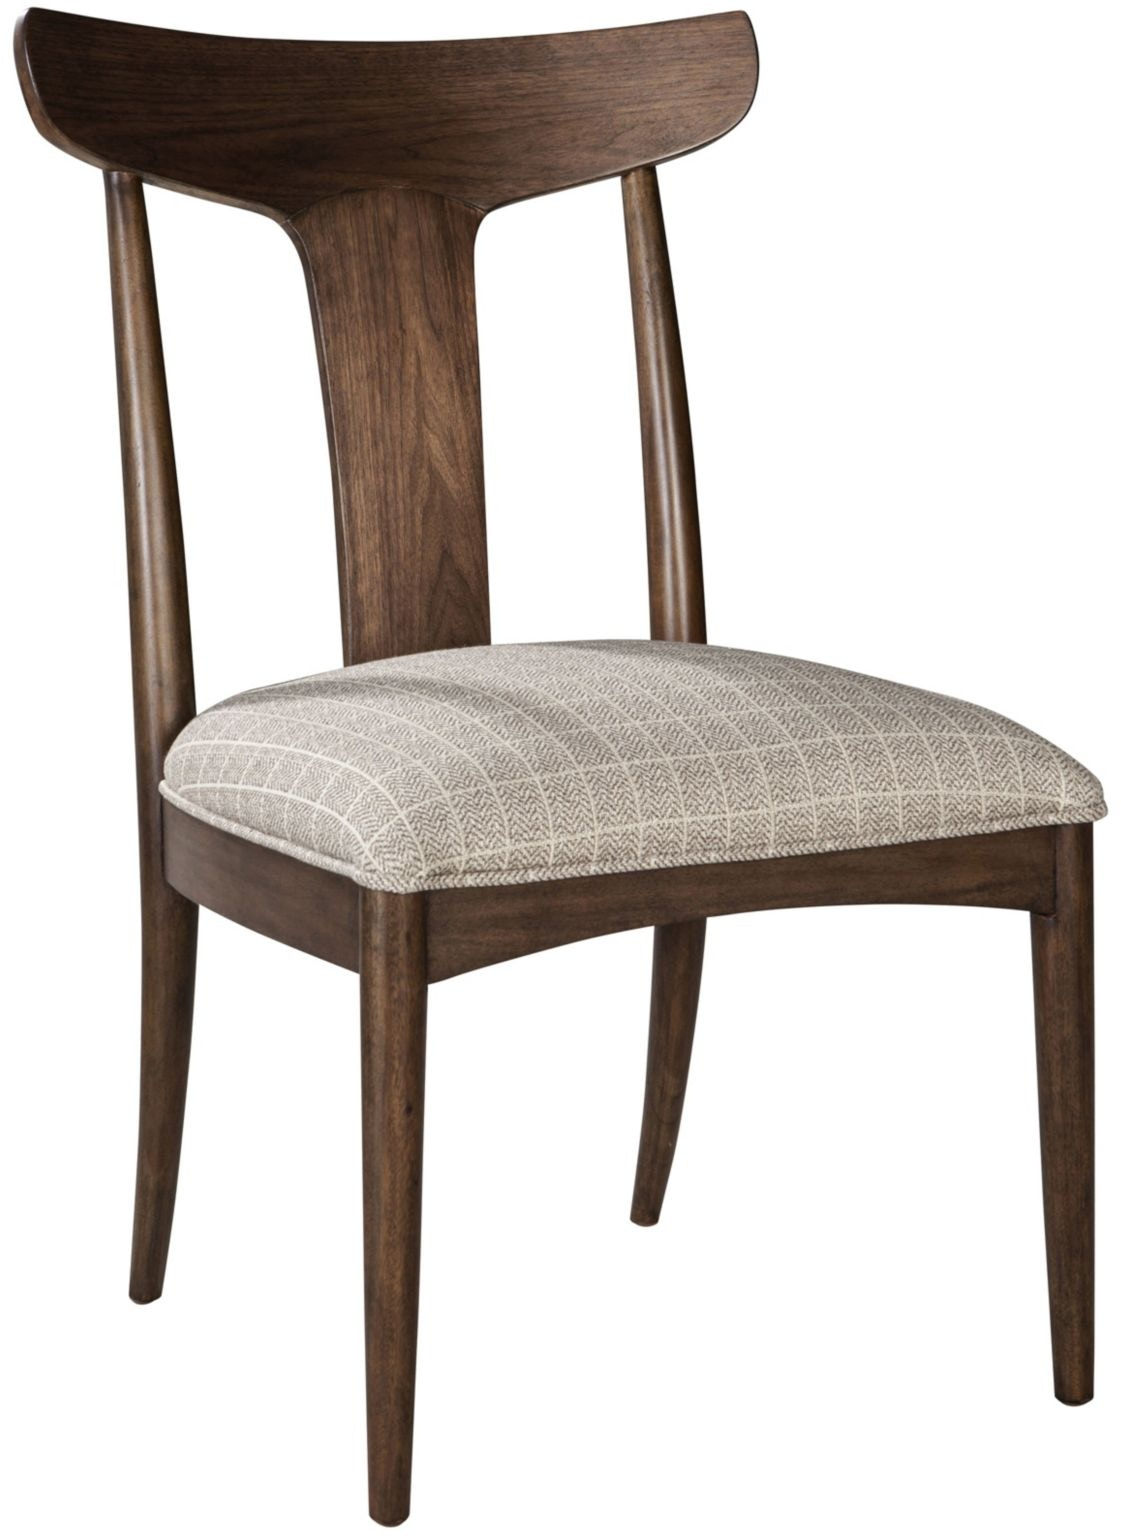 Thomasville Dining Room Lania Side Chair 85821 821